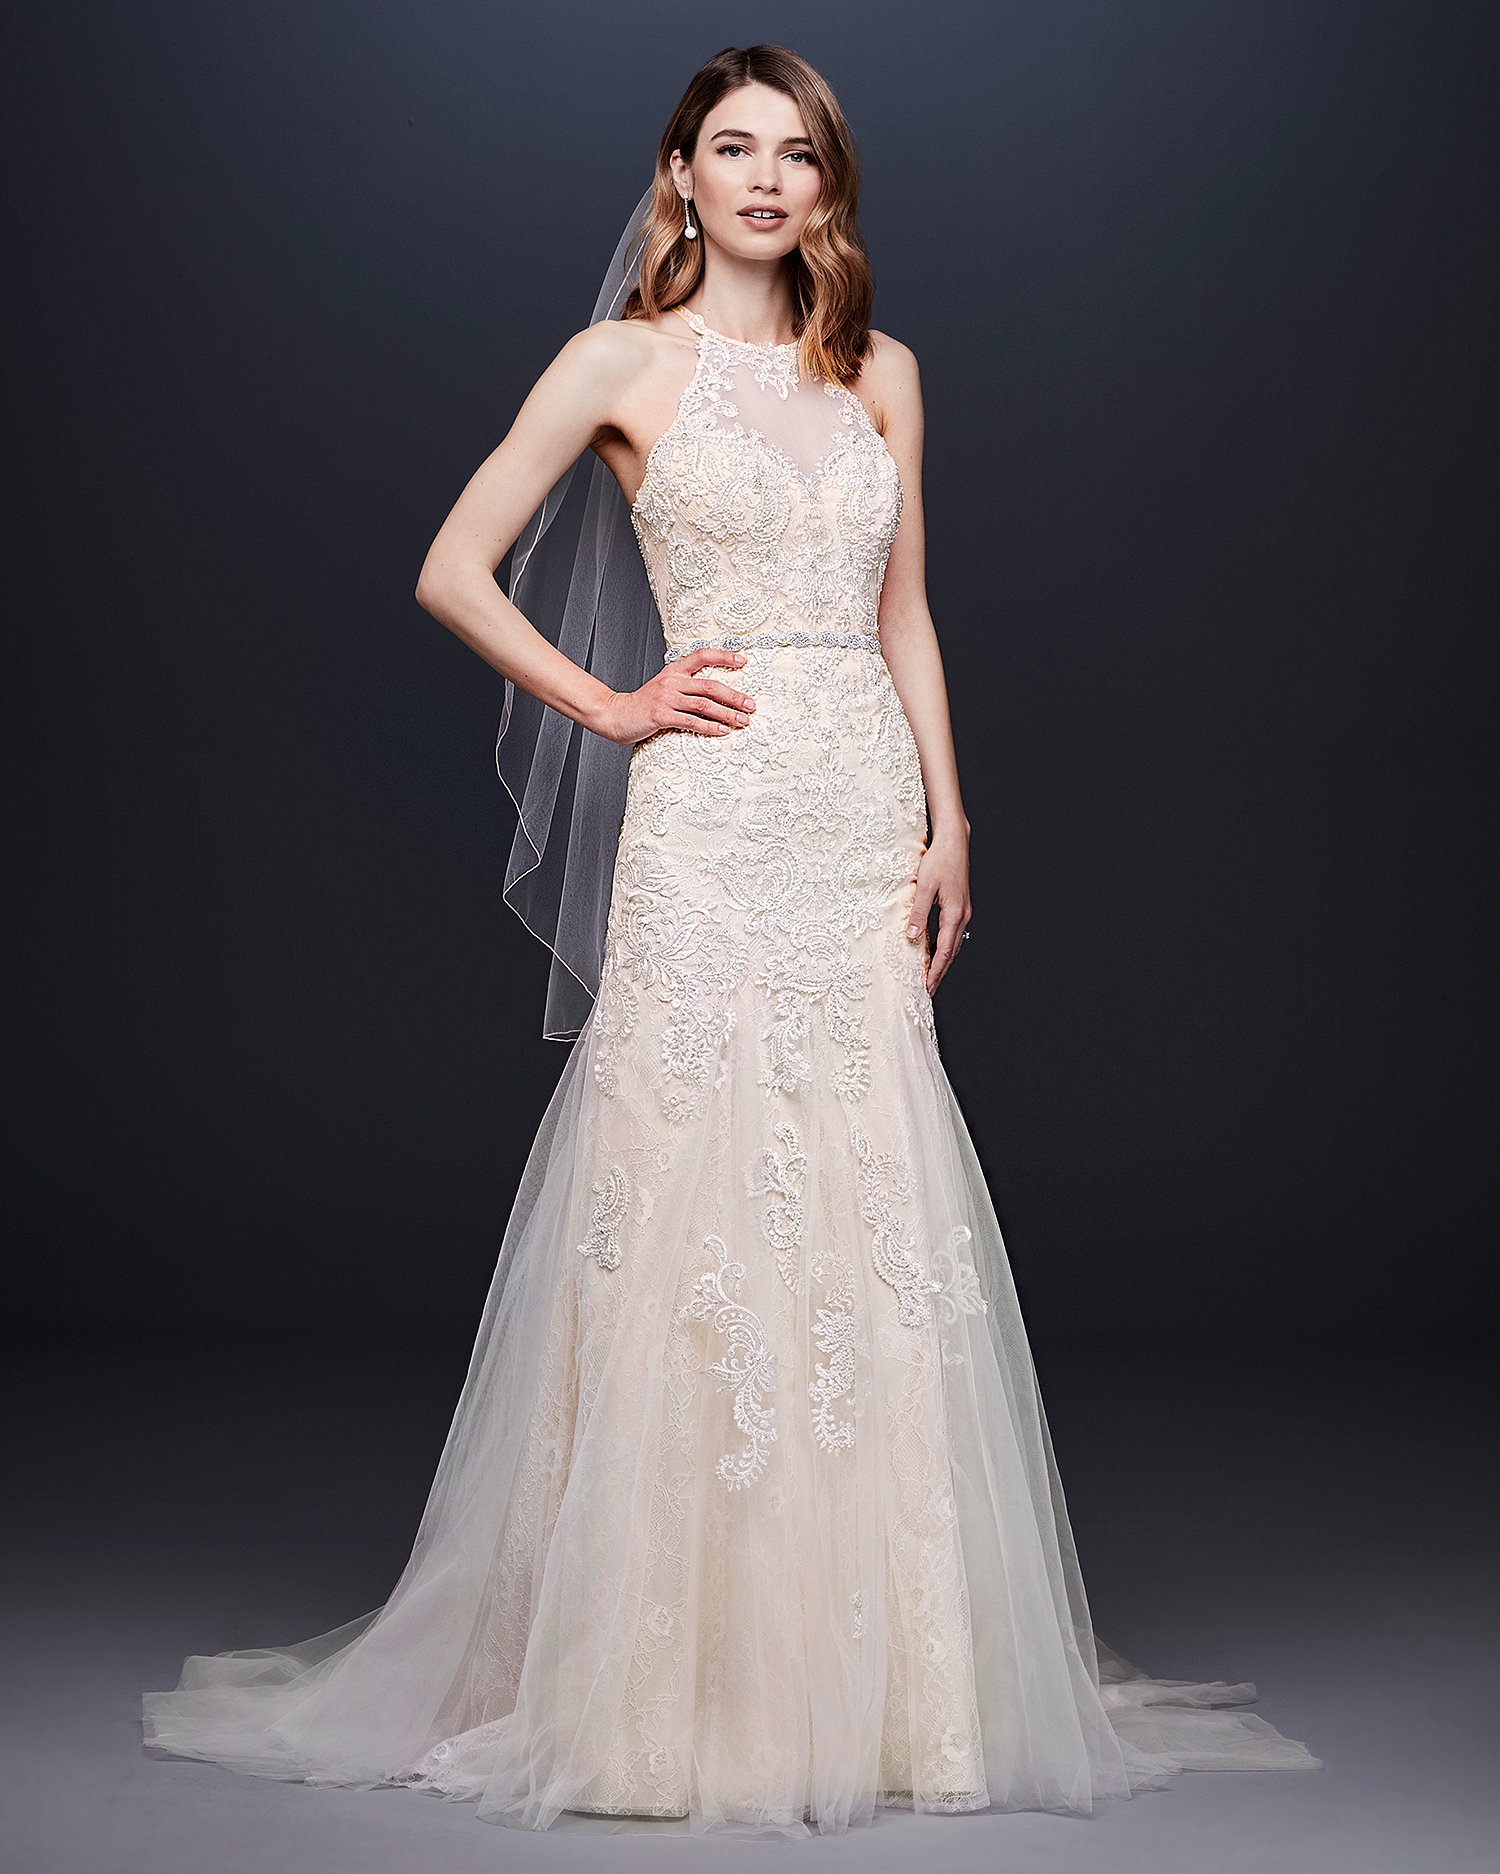 Db Studio Wedding Gowns: David's Bridal Fall 2019 Wedding Dress Collection